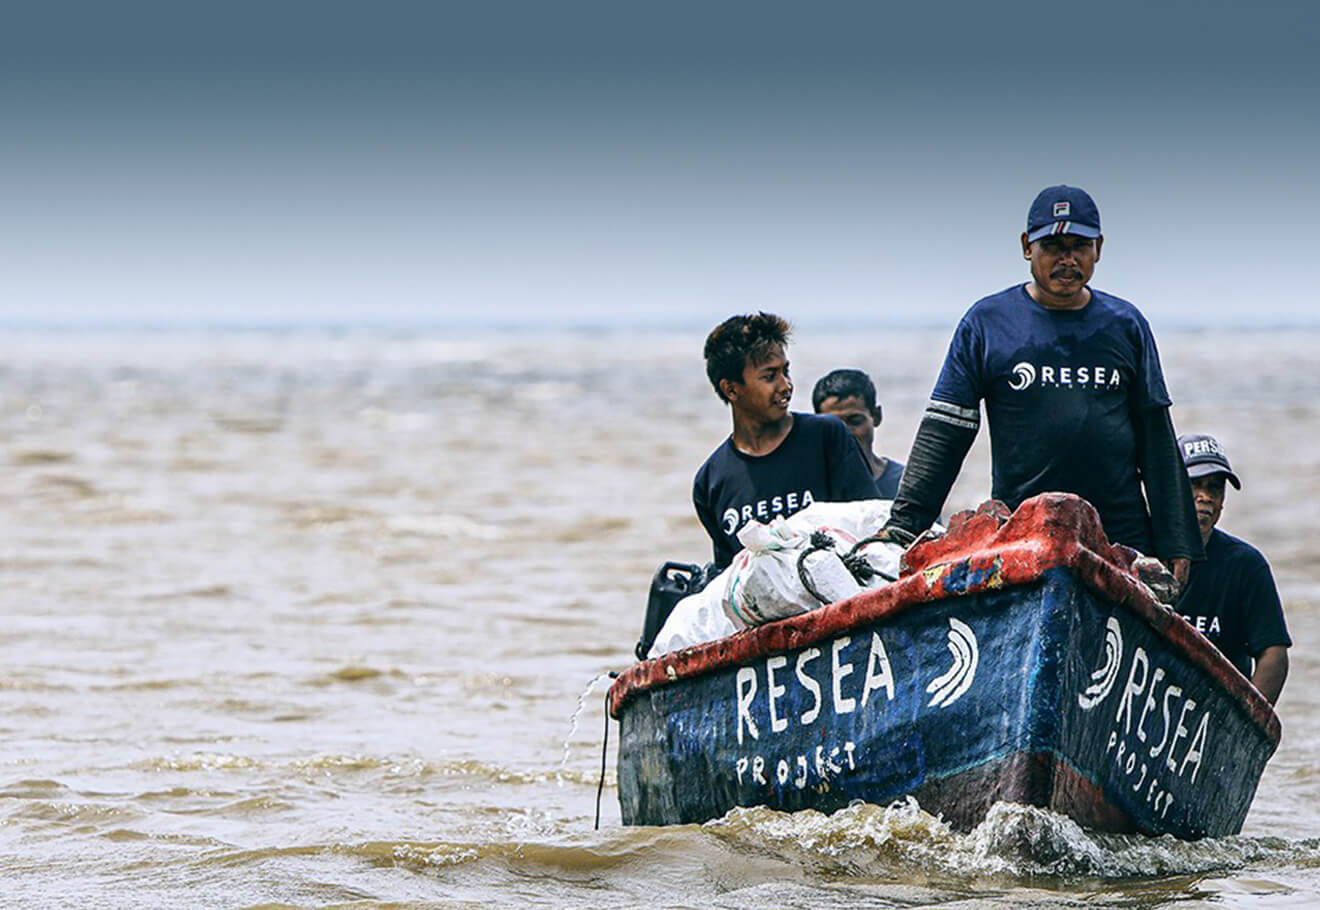 Fishermen from ReSea Project collect ocean litter on a boat